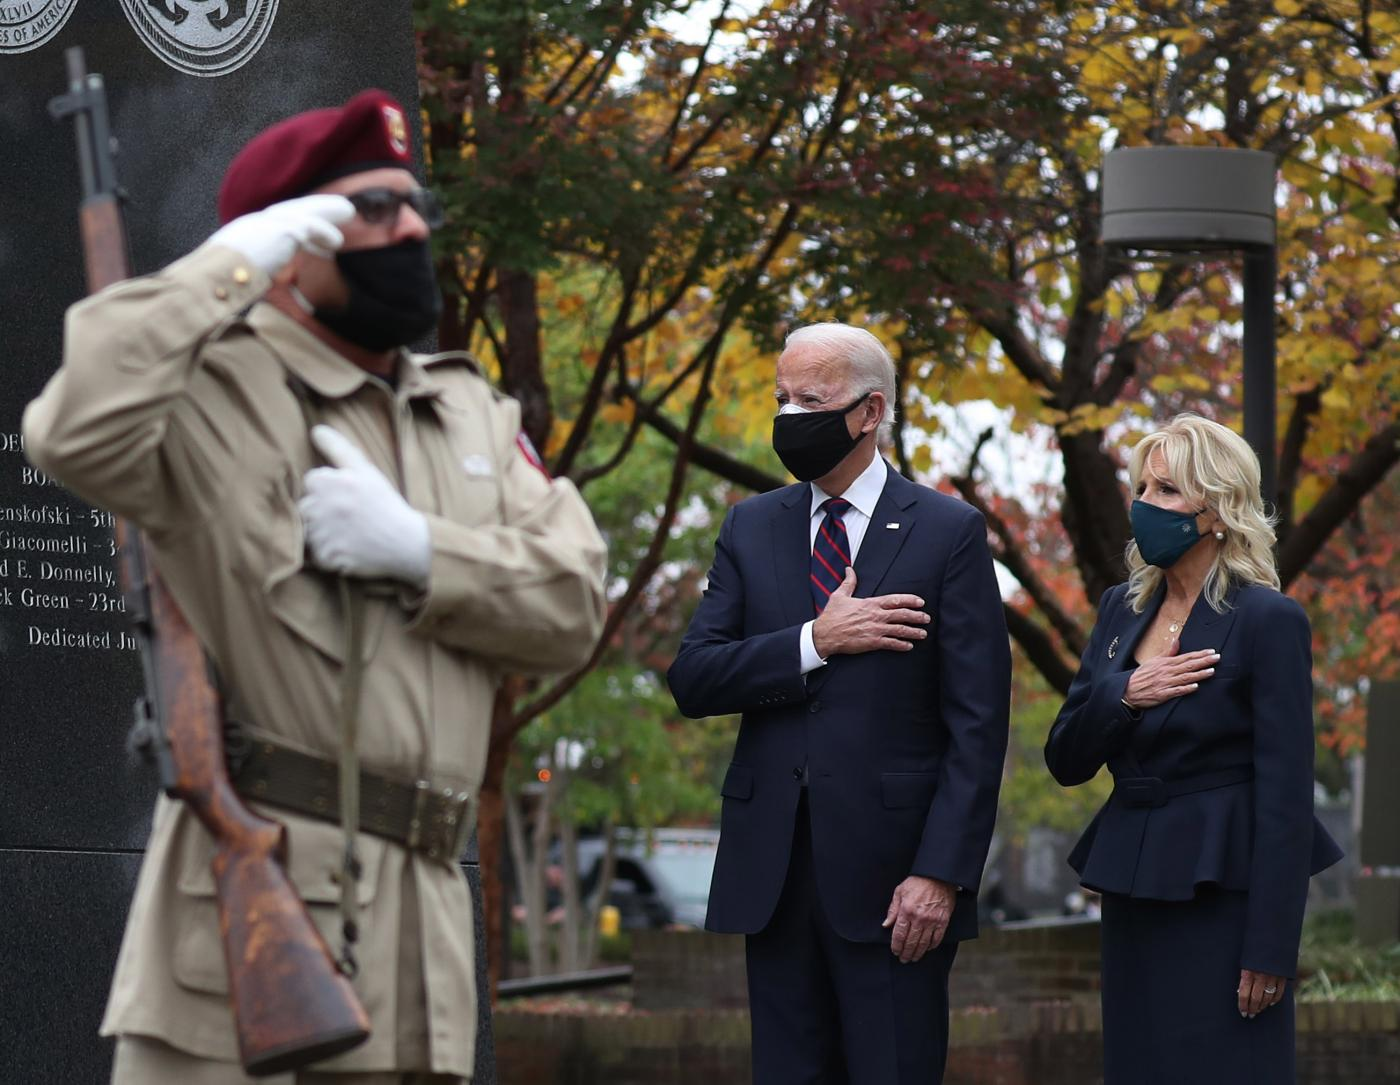 Joe Biden and his wife Jill pay respects during a Veterans Day stop at the Korean War Memorial Park in Philadelphia, Pennsylvania on 11 November.